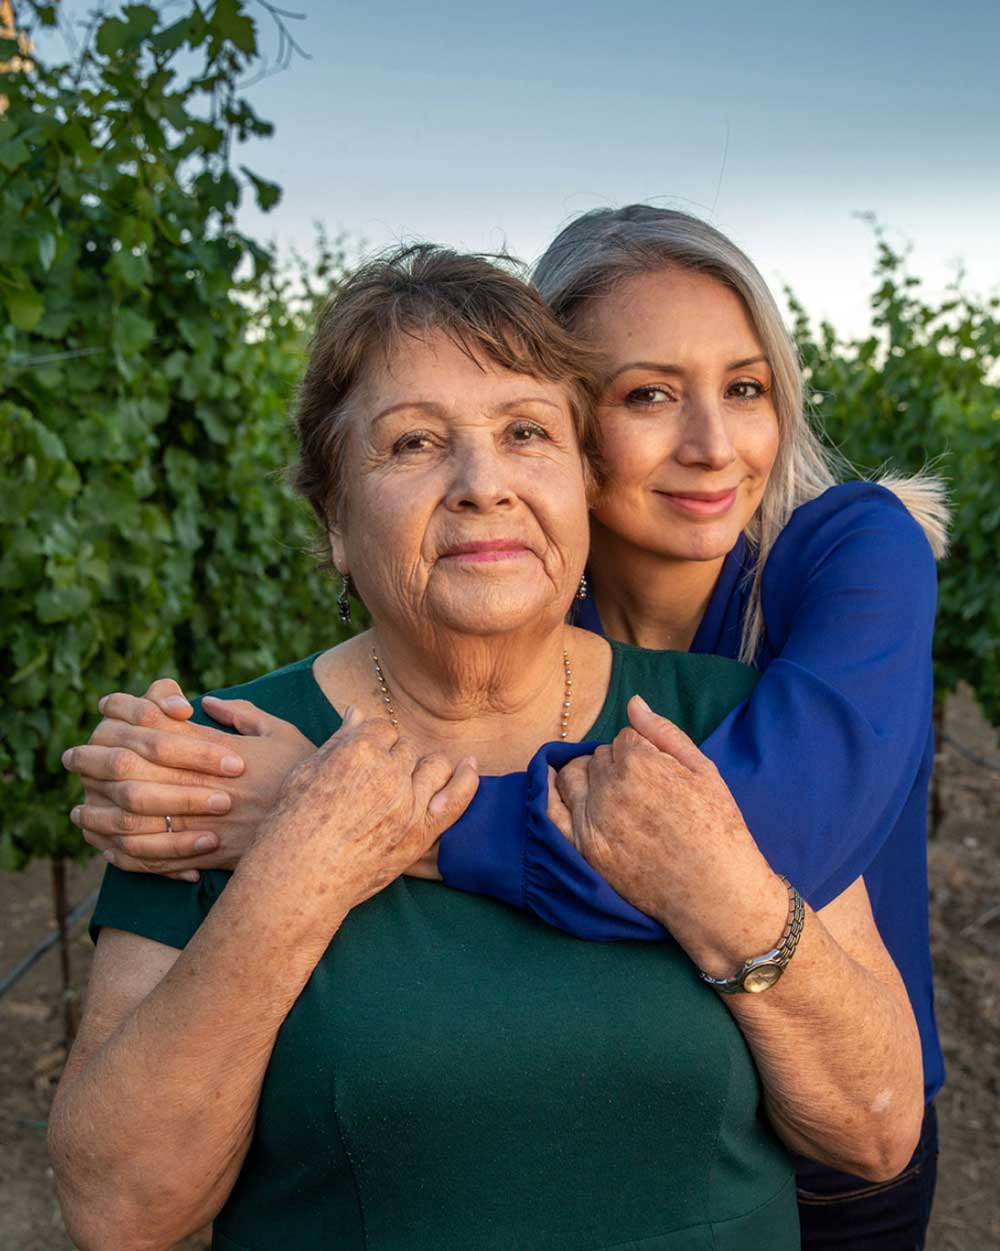 Co-owner of Robledo Family Winery Maria Robledo being hugged by her daughter Vanessa in a vineyard